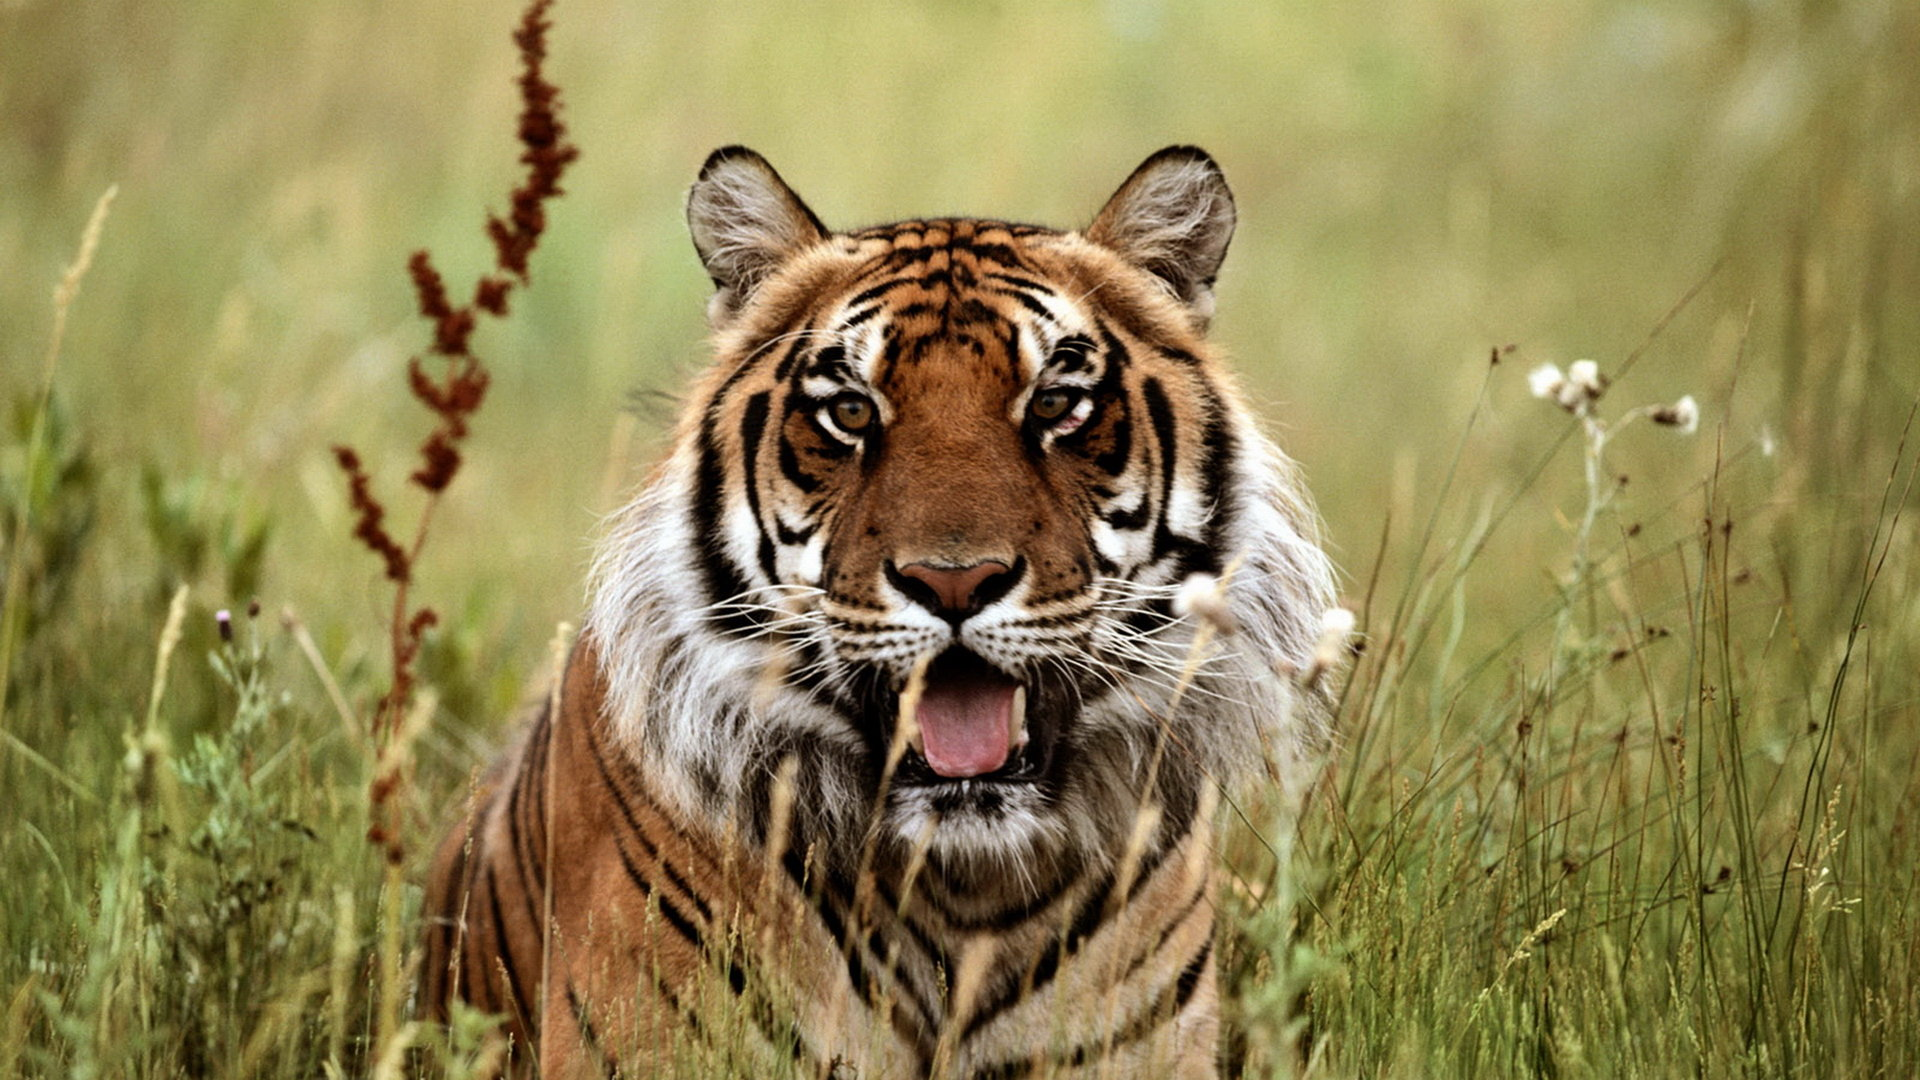 Awesome Tiger free wallpaper ID:116400 for full hd 1920x1080 computer